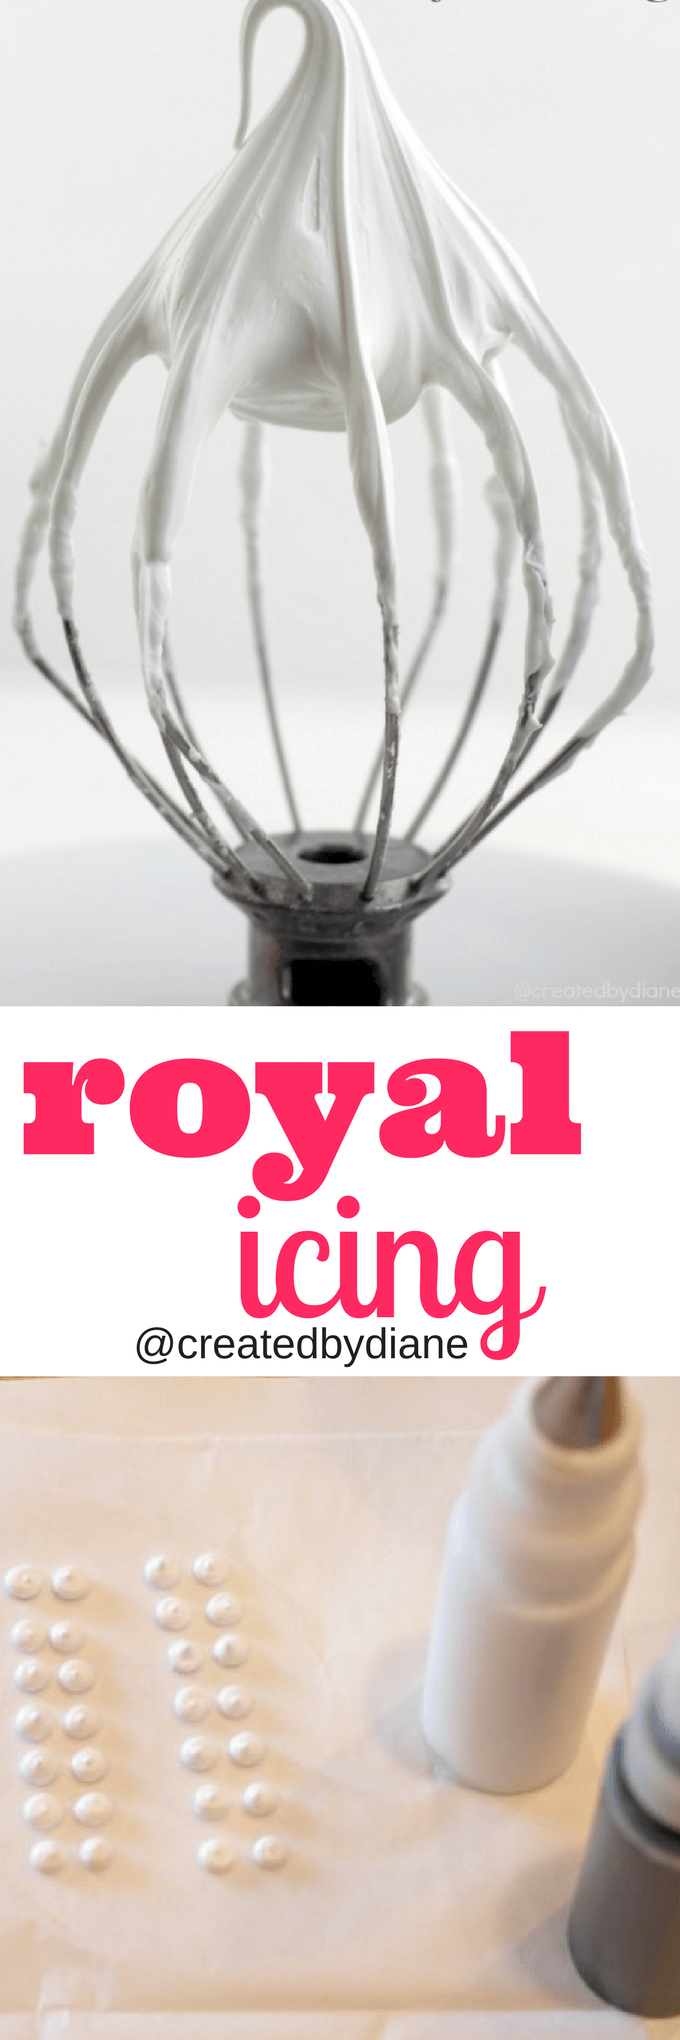 royal icing, great for cookies, cupcake toppers, decorating desserts @createdbydiane